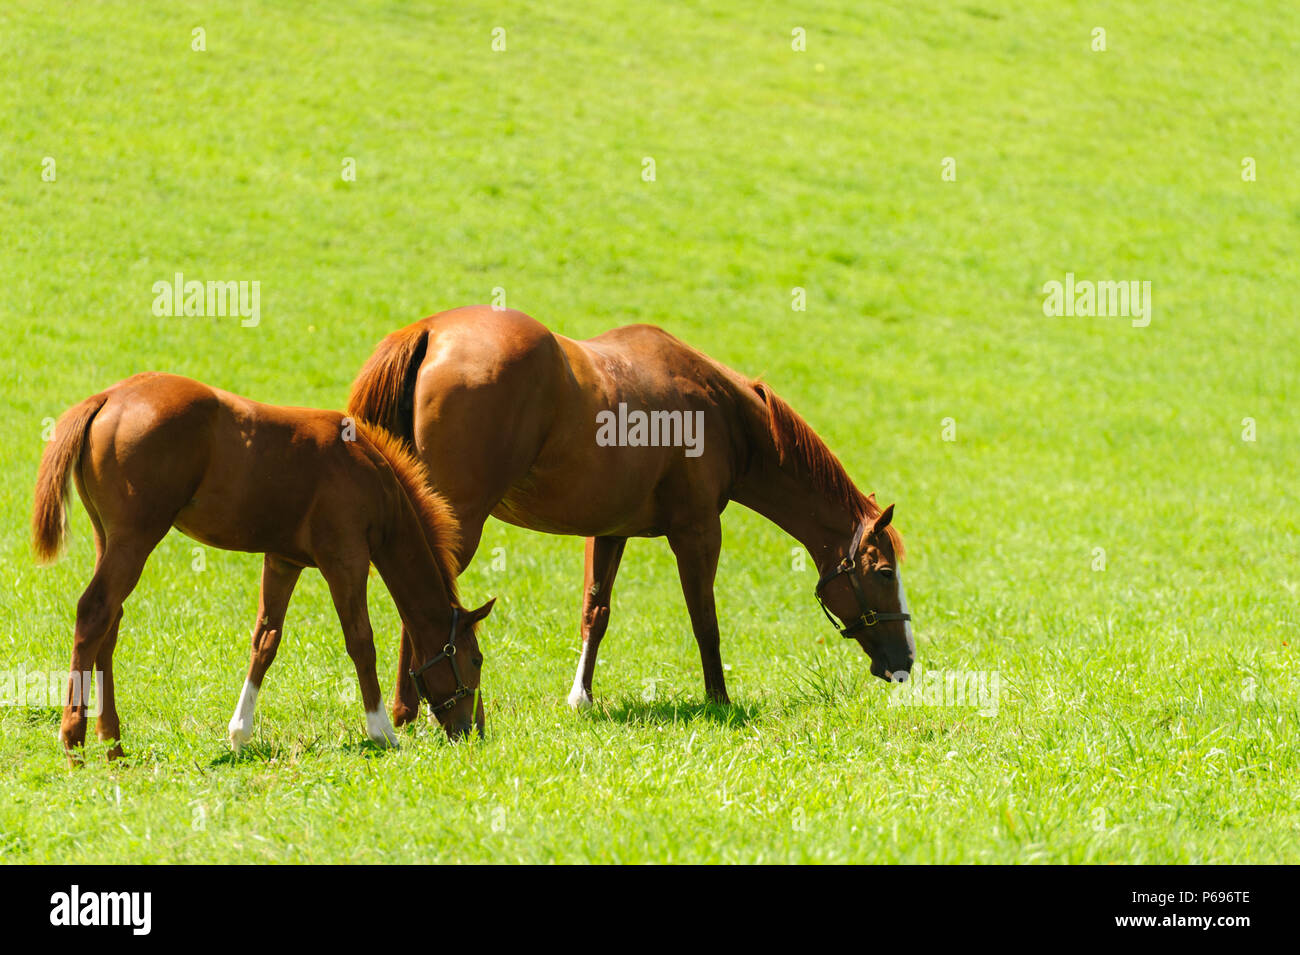 Horses grazing on a horse farm in Lexington Kentucky - Stock Image